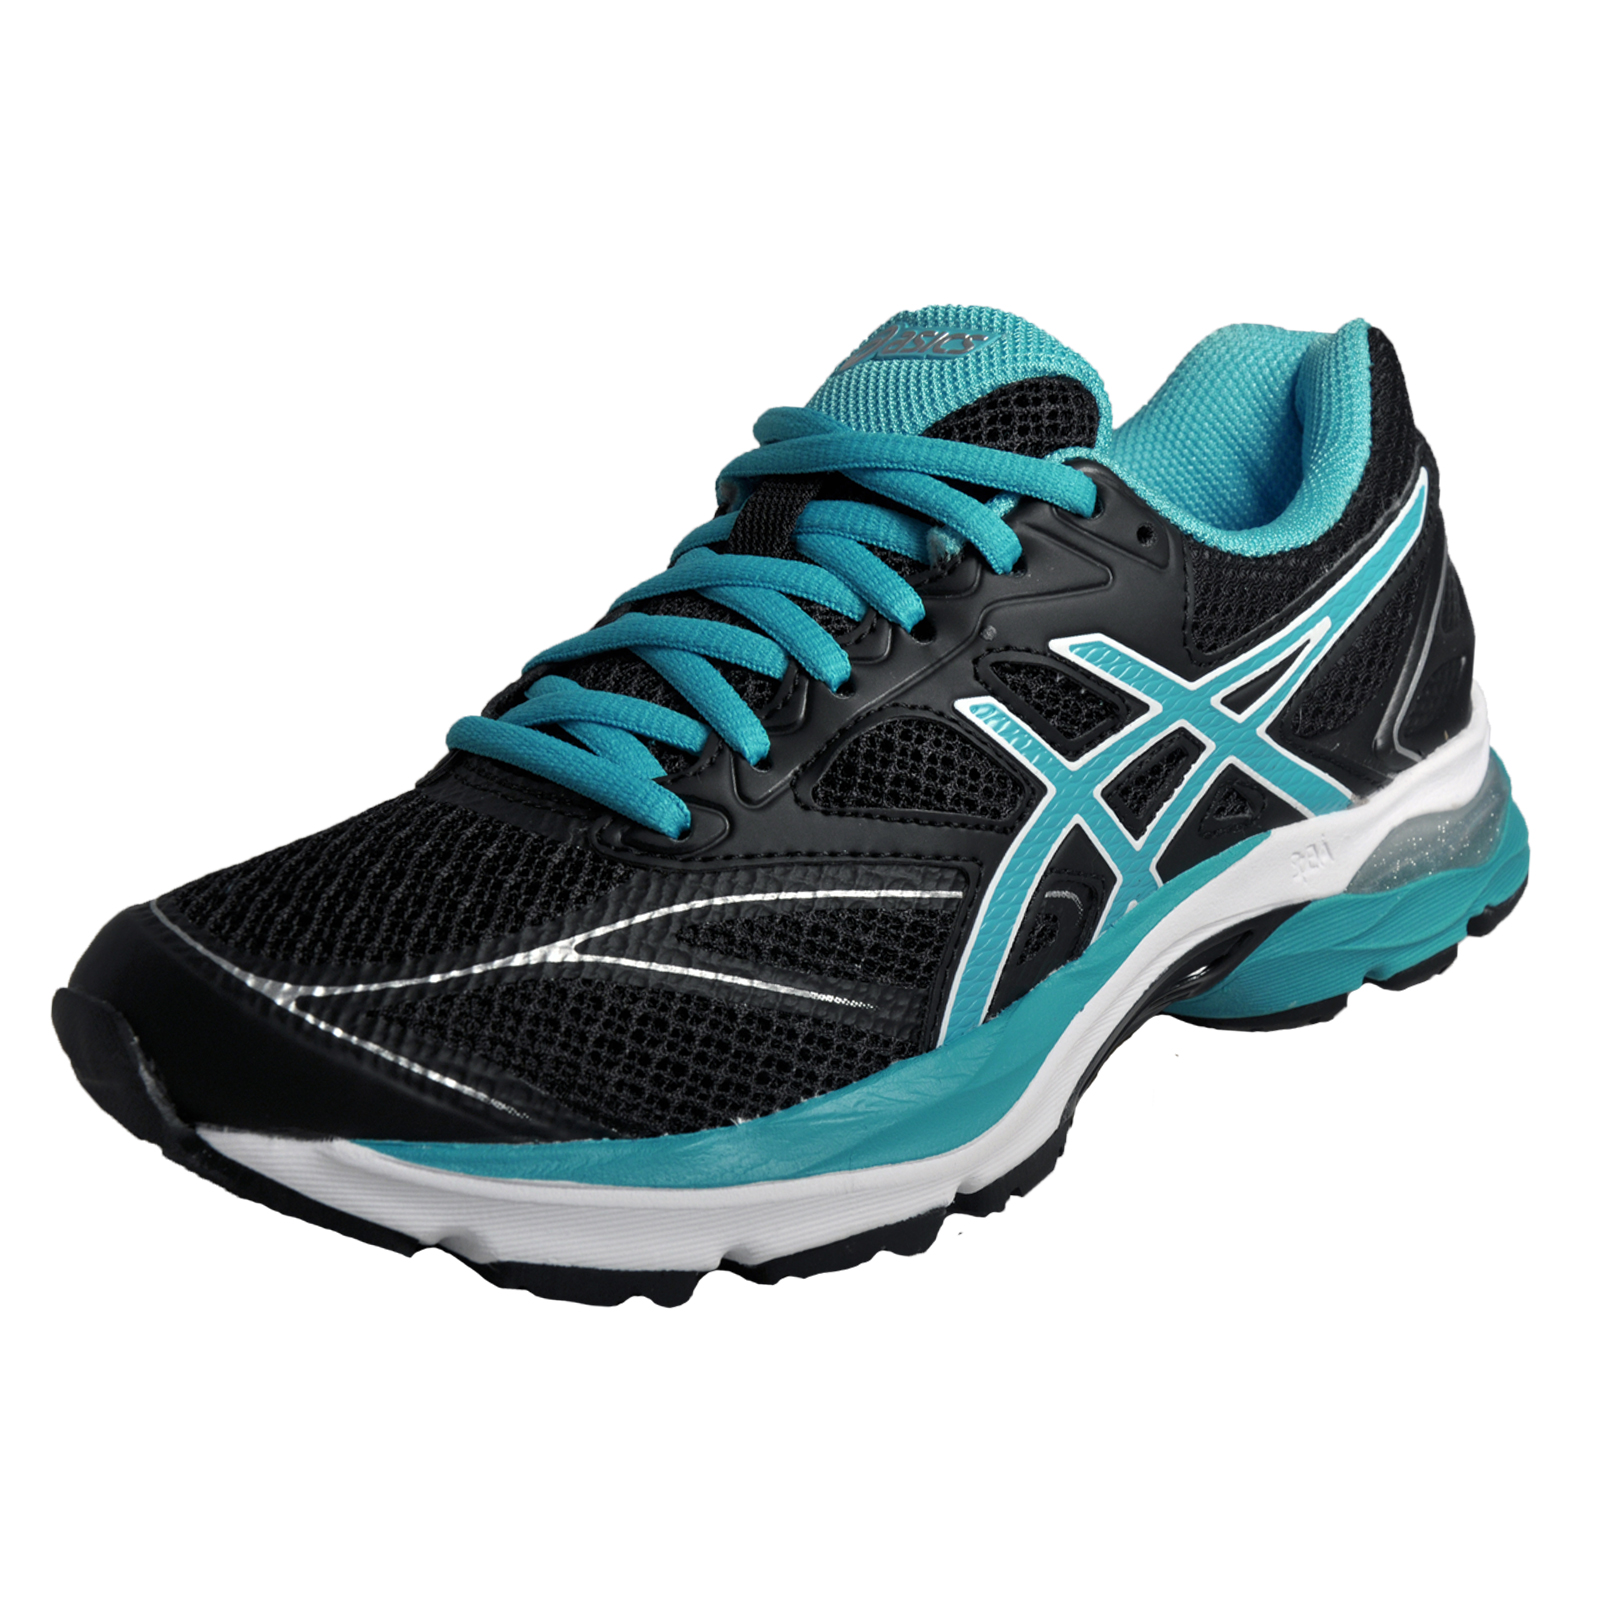 07d8036fe385 Details about Asics Gel Pulse 8 Womens Running Shoes Fitness Gym Trainers  Black